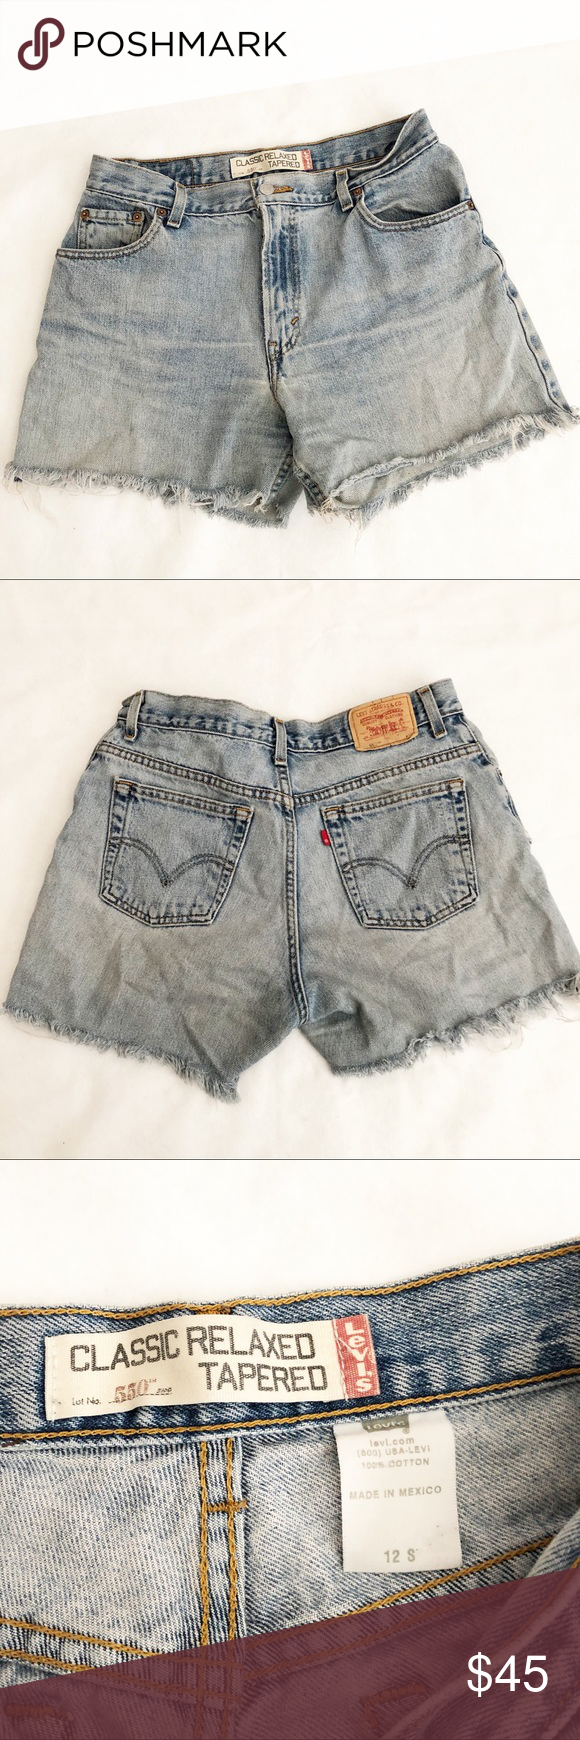 "Women's Distressed Levi Cutoff Shorts Women's Distressed Levi 550  Cutoff Shorts Size 12- EUC  Length from waist to hem 14"" Rise - 12"" Levi's Shorts Jean Shorts #denimcutoffshorts Women's Distressed Levi Cutoff Shorts Women's Distressed Levi 550  Cutoff Shorts Size 12- EUC  Length from waist to hem 14"" Rise - 12"" Levi's Shorts Jean Shorts #denimcutoffshorts"